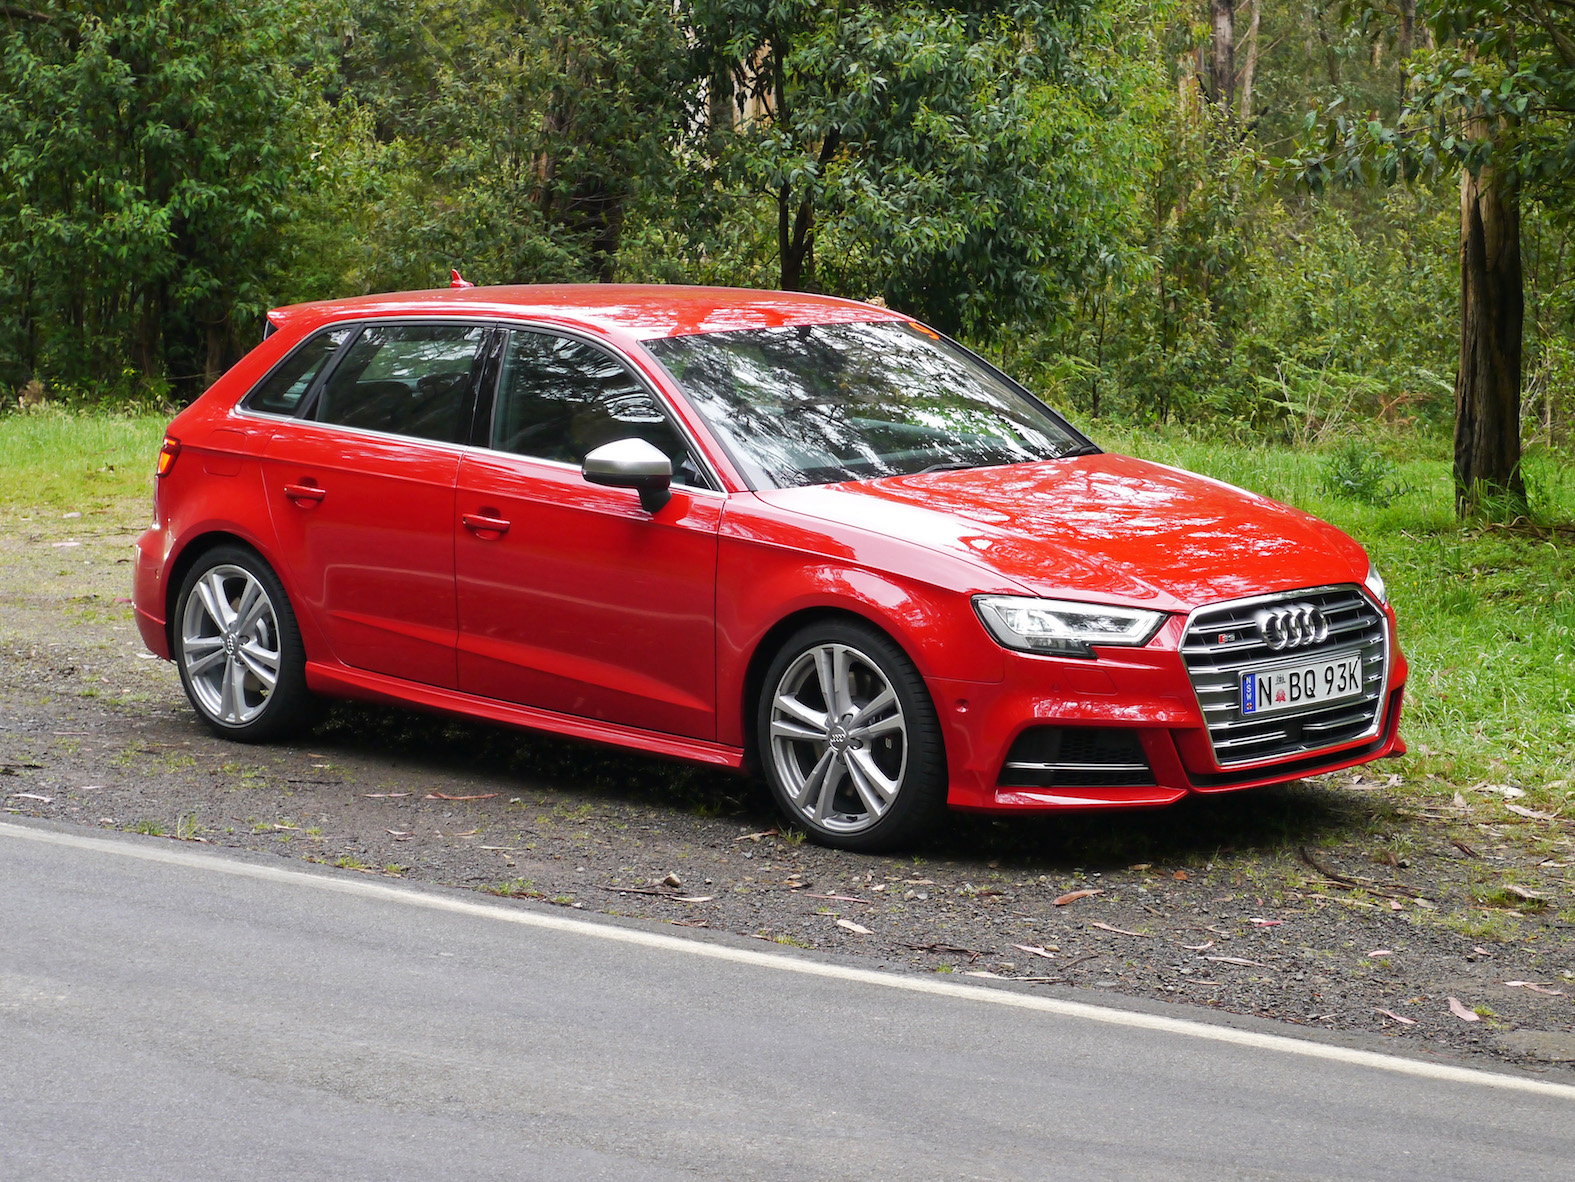 2017 Audi A3 and S3 Review | Keeping Audi's Premium Compact Fresh